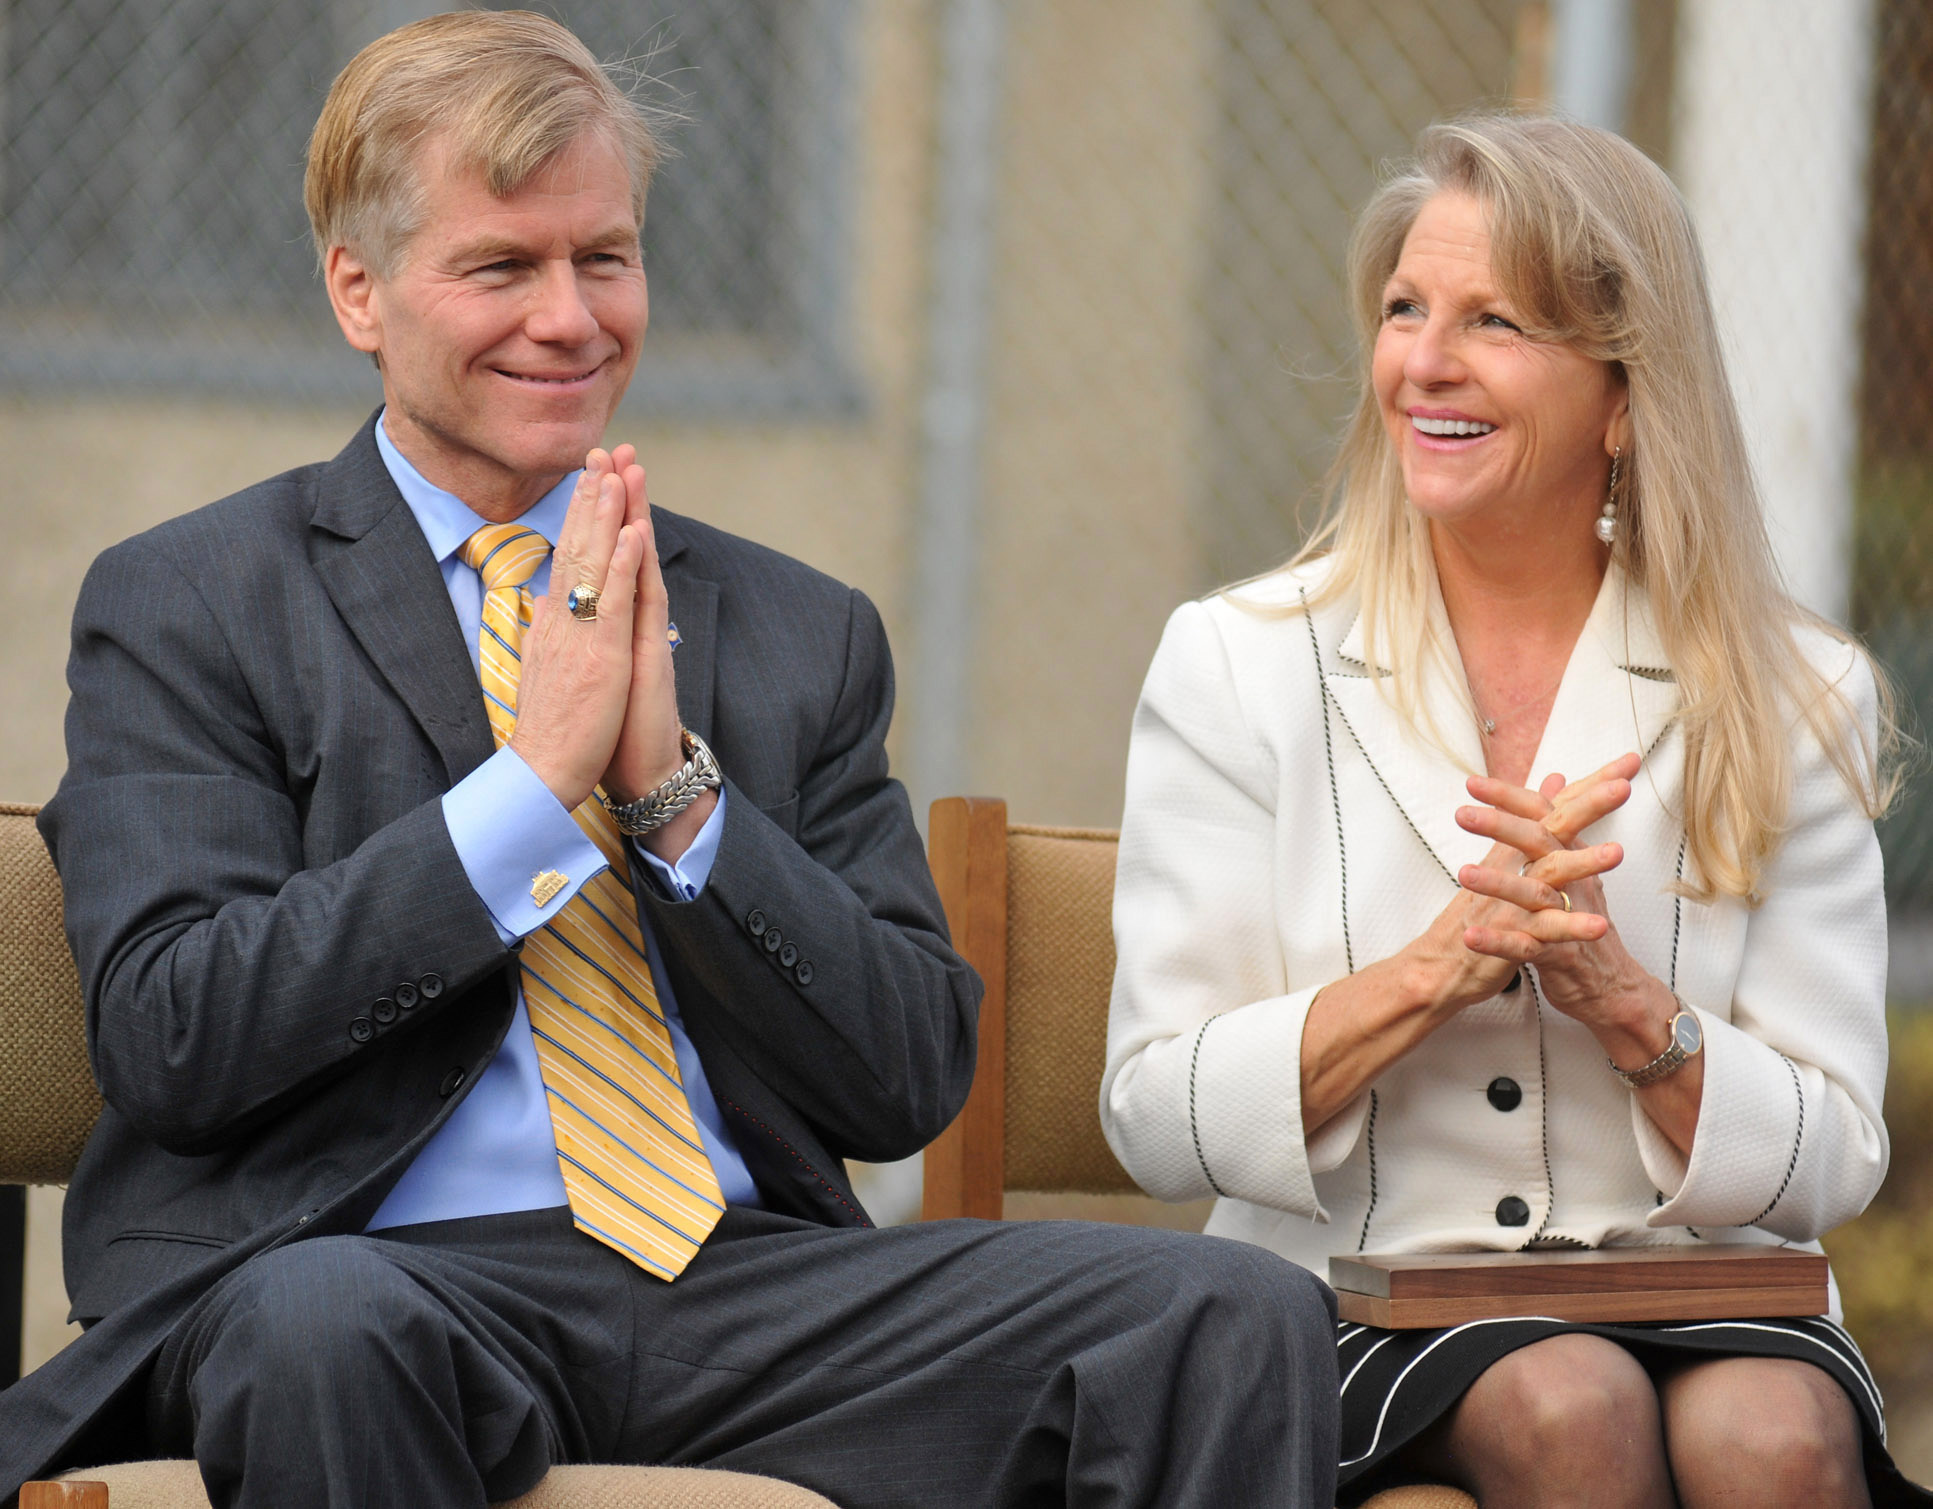 virginia governor bob mcdonnell thesis A dashboard camera shows gillespie at the wheel of a light suv, with former gop governor bob mcdonnell in the back seat on mcdonnell's graduate thesis, written in 1989 at pat robertson's regent university in virginia beach, in which he criticized feminists, working women, and homosexuality.